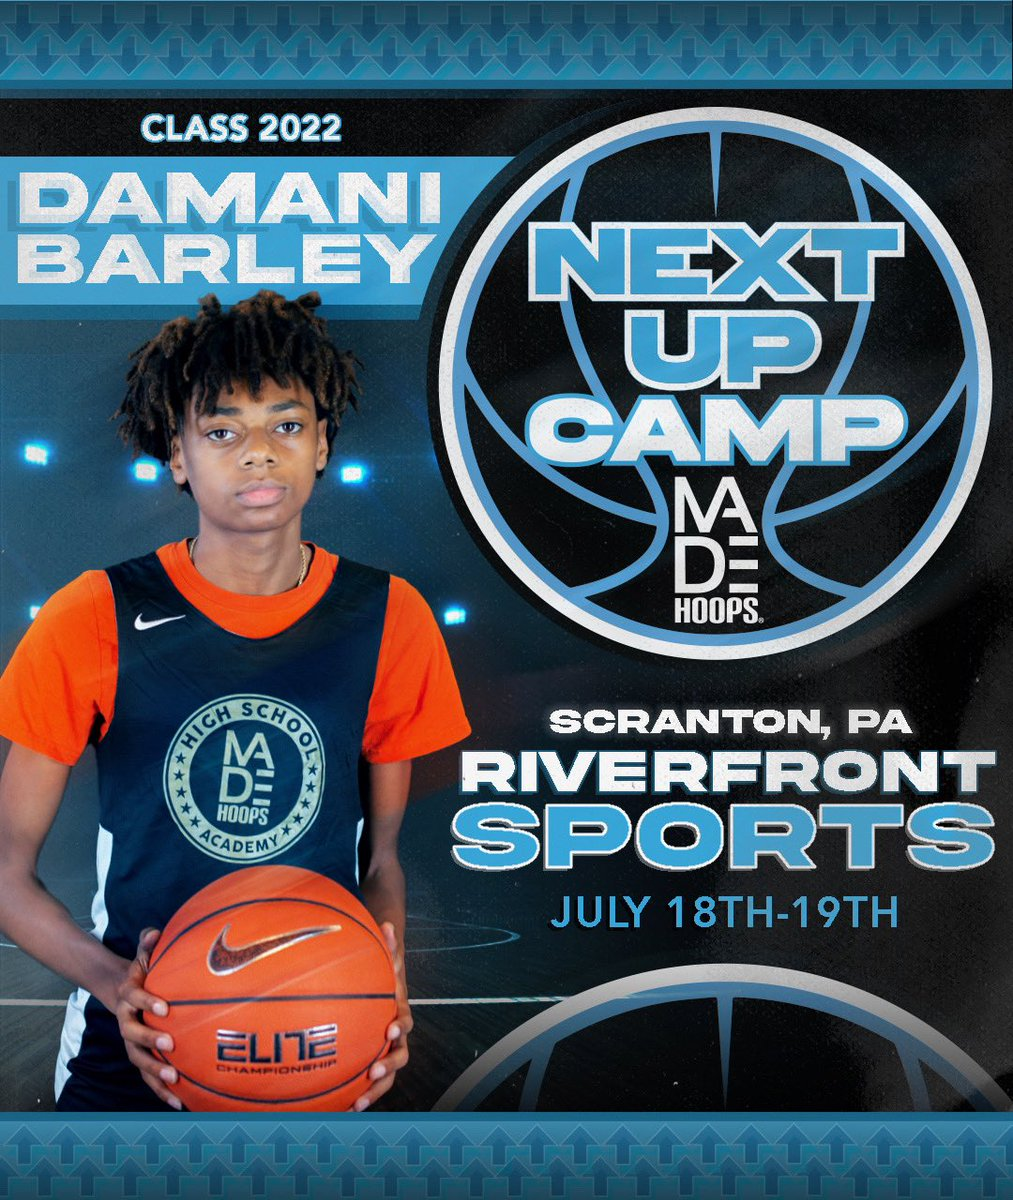 2022 Damani Barley is LOCKED IN 🔐 and ready to show out at Next Up Camp! 💪  Are YOU Next Up? It's time to #CreateYourName.  🗓: July 11th-12th, 18th-19th, & 25th-26th ⛹️‍: Classes 2021-2026 🏟: Riverfront Sports 📍: Scranton, PA 🎥: Live Streamed  🎟: https://t.co/Pwy8j4Nvqa https://t.co/cZMZKmFKIR